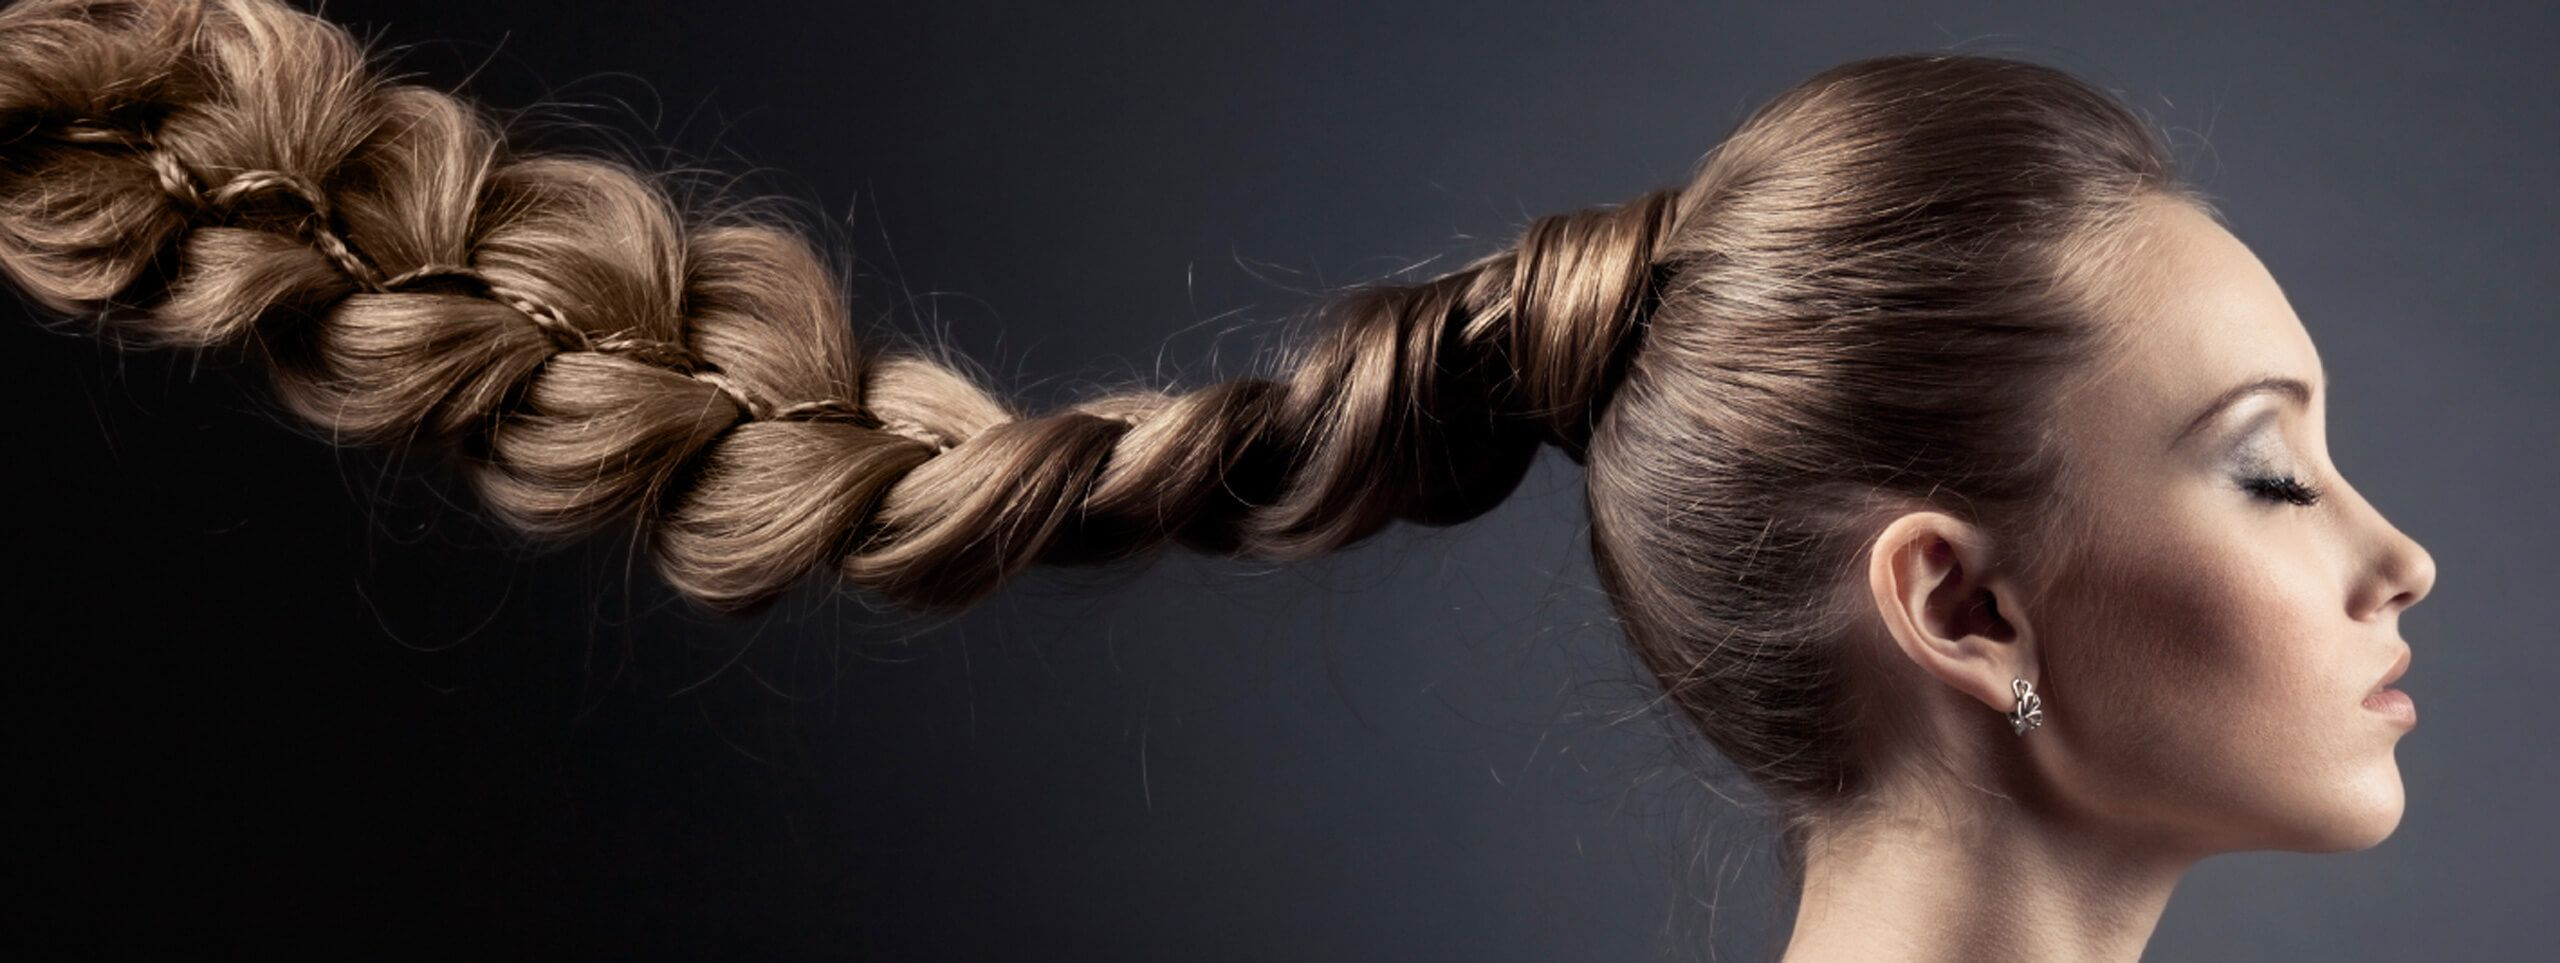 Model with long plait hairstyle